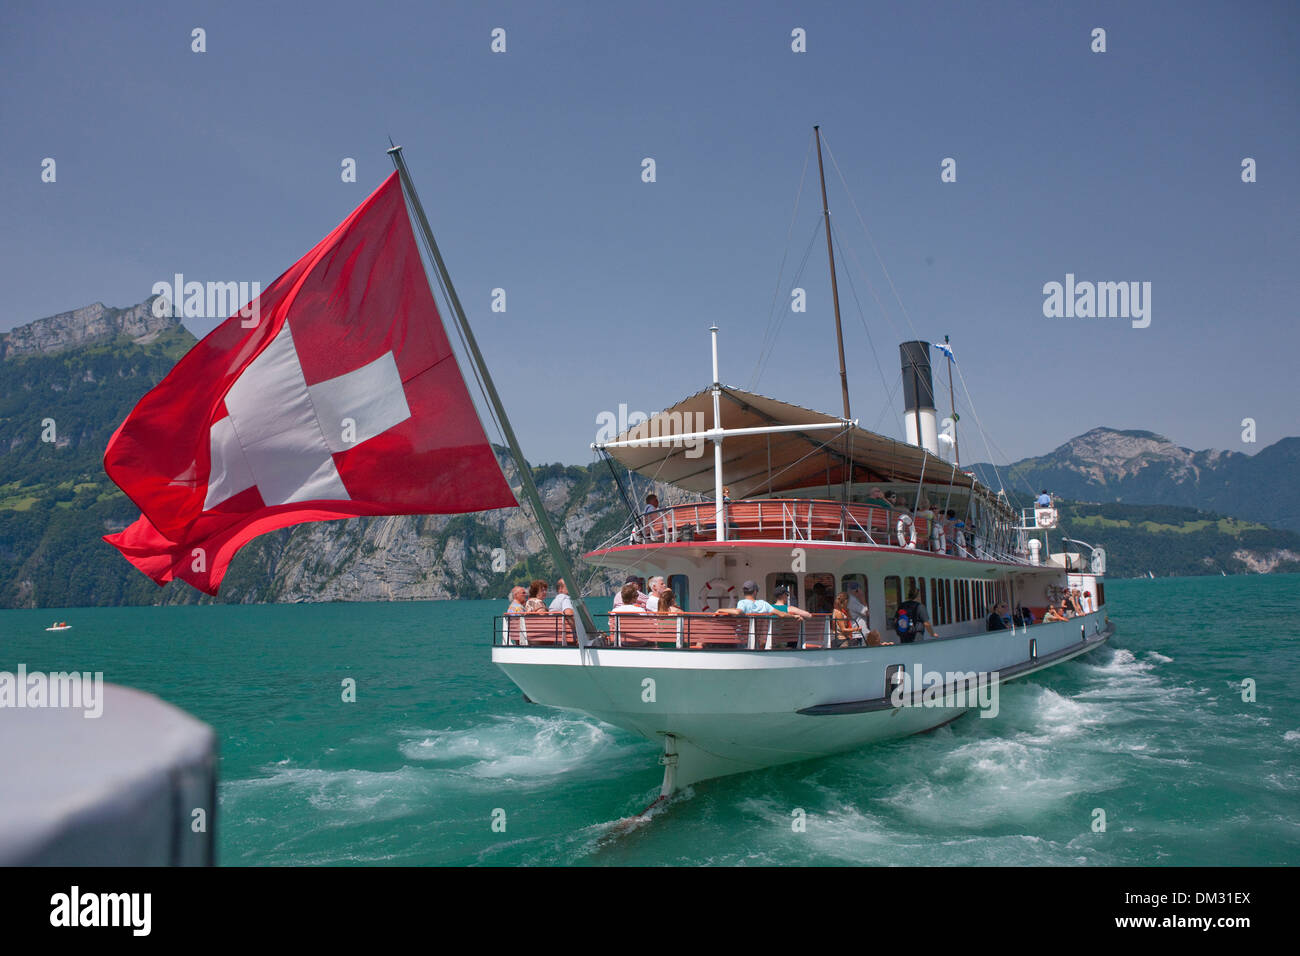 Switzerland, Europe, lake Lucerne, central Switzerland, canton, UR, Uri, steamboat, Swiss, flag, lake, Swiss flag, - Stock Image